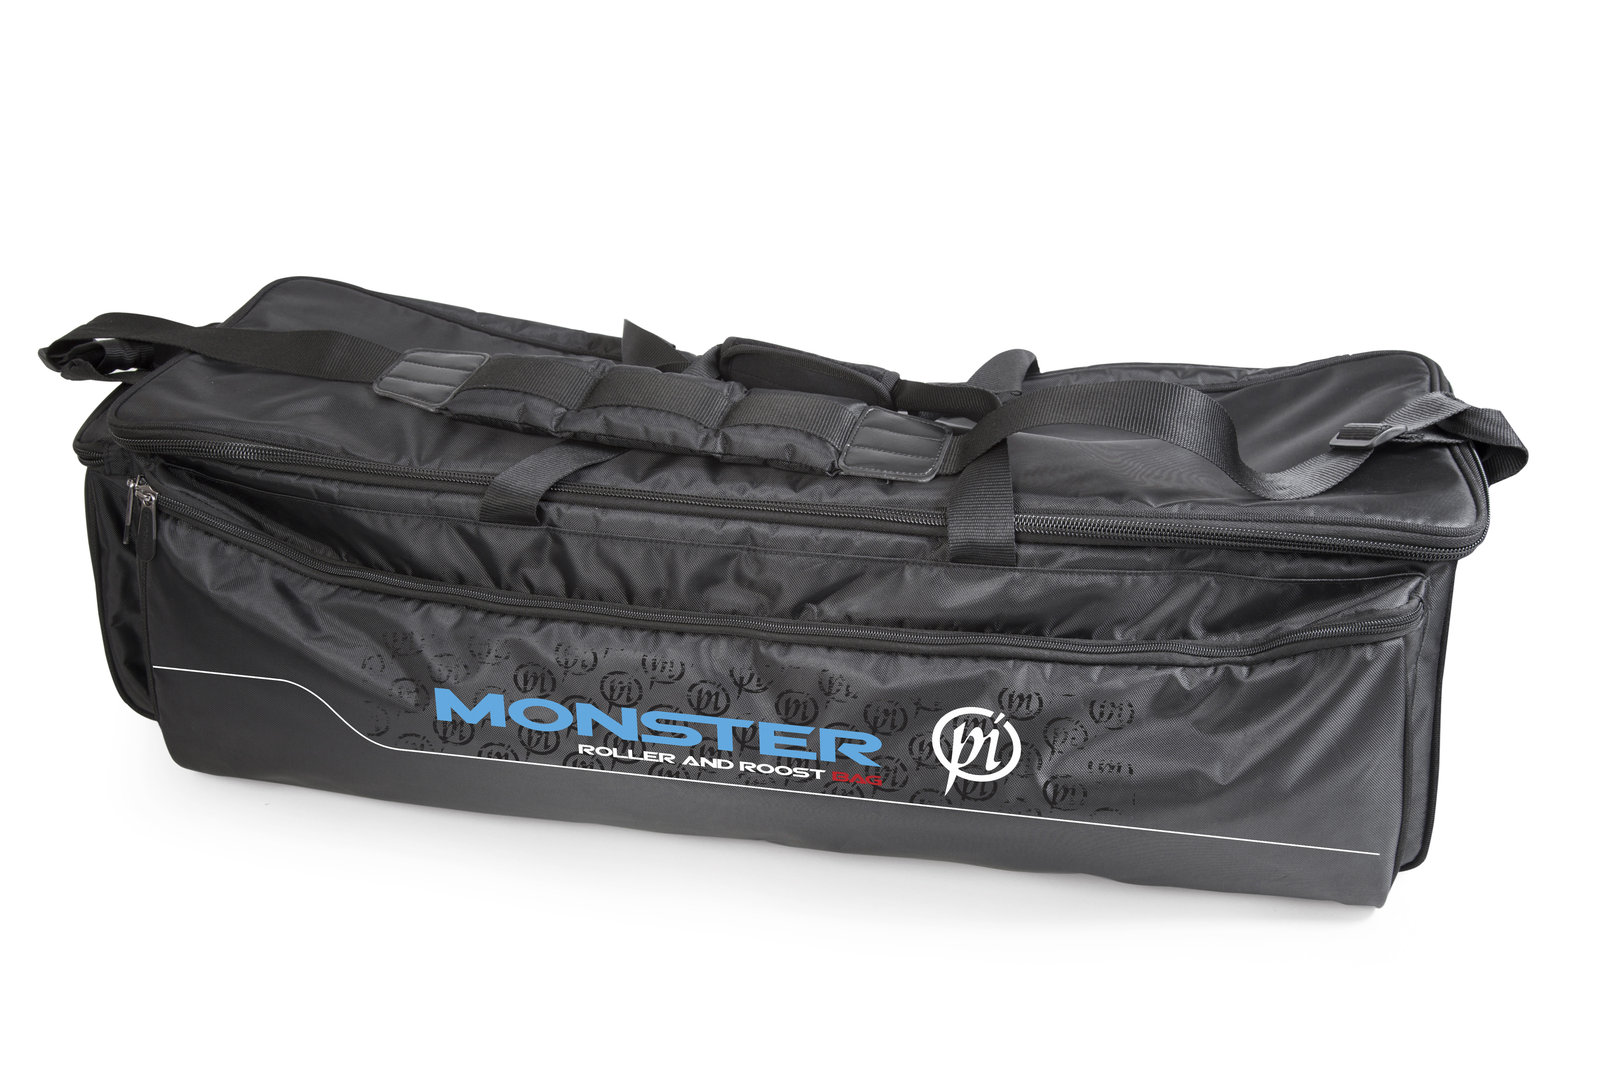 Preston Monster Roller & Roost Bag - Tasche